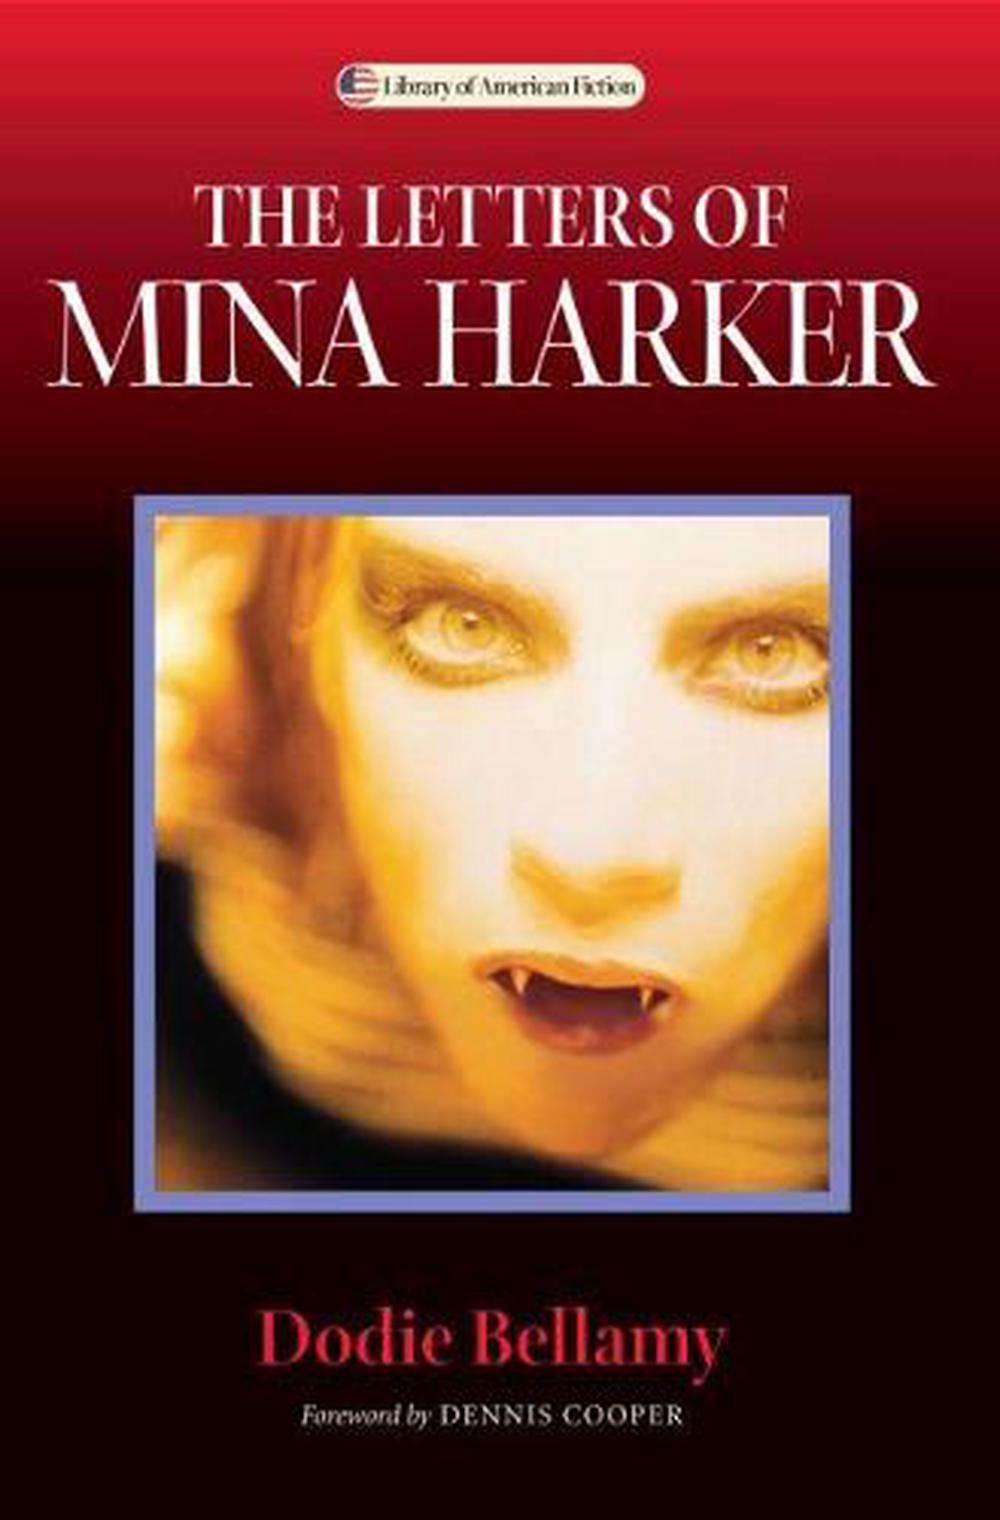 explore the presentation of mina harker Find and save ideas about mina harker on pinterest | see more ideas about dracula movie 1992, dracula by bram stoker and bram stoker.